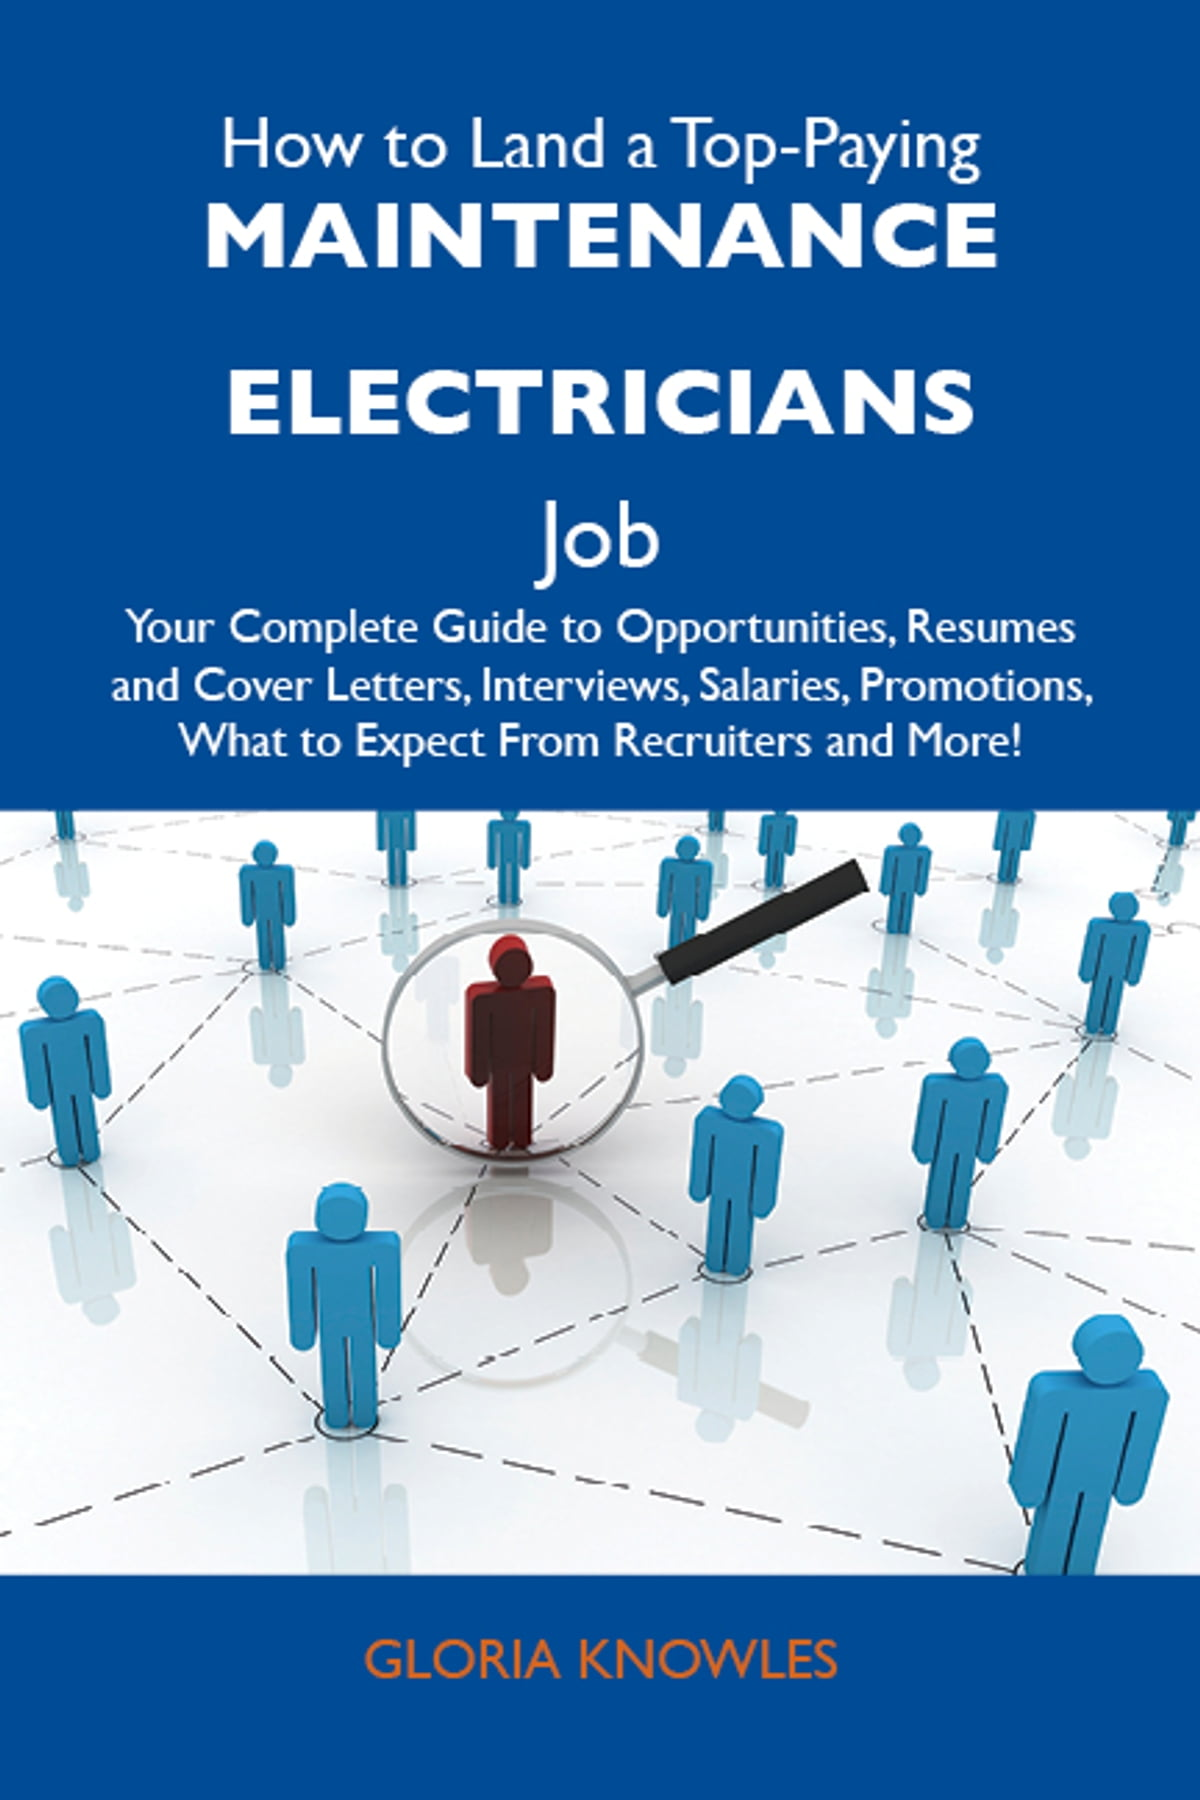 How to Land a Top-Paying Maintenance electricians Job: Your Complete Guide  to Opportunities, Resumes and Cover Letters, Interviews, Salaries, ...